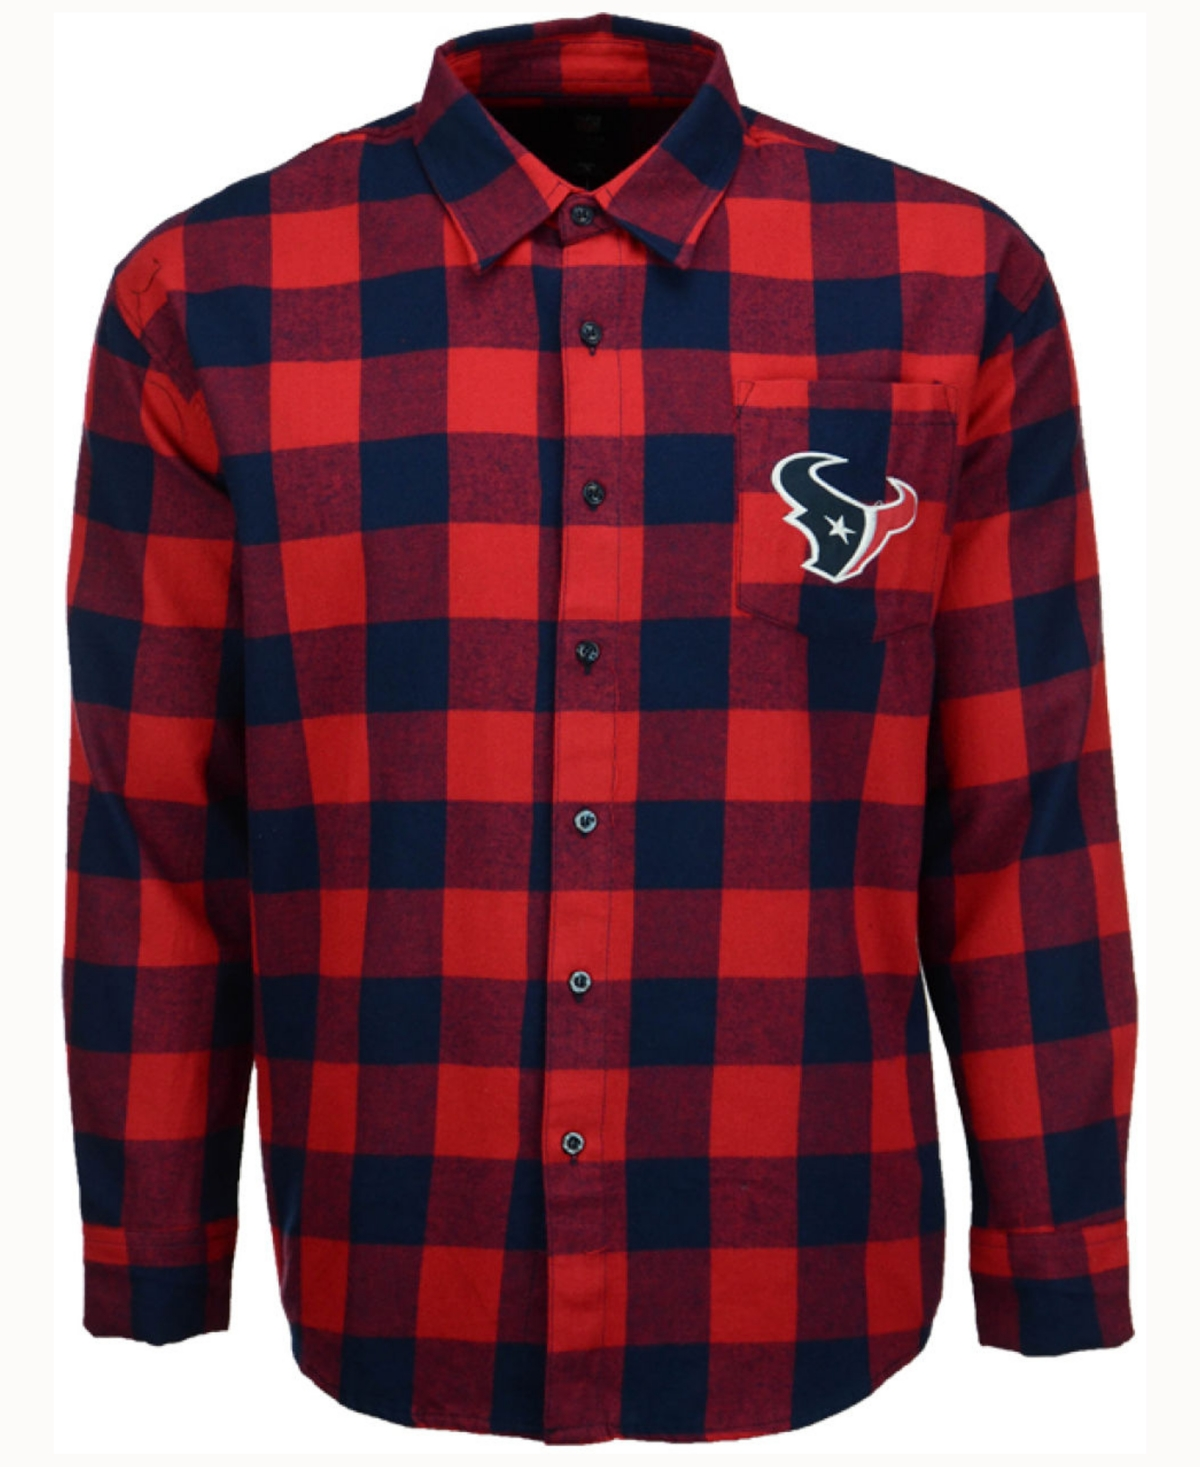 Forever Collectibles Men's Houston Texans Large Check Flannel Button Down Shirt